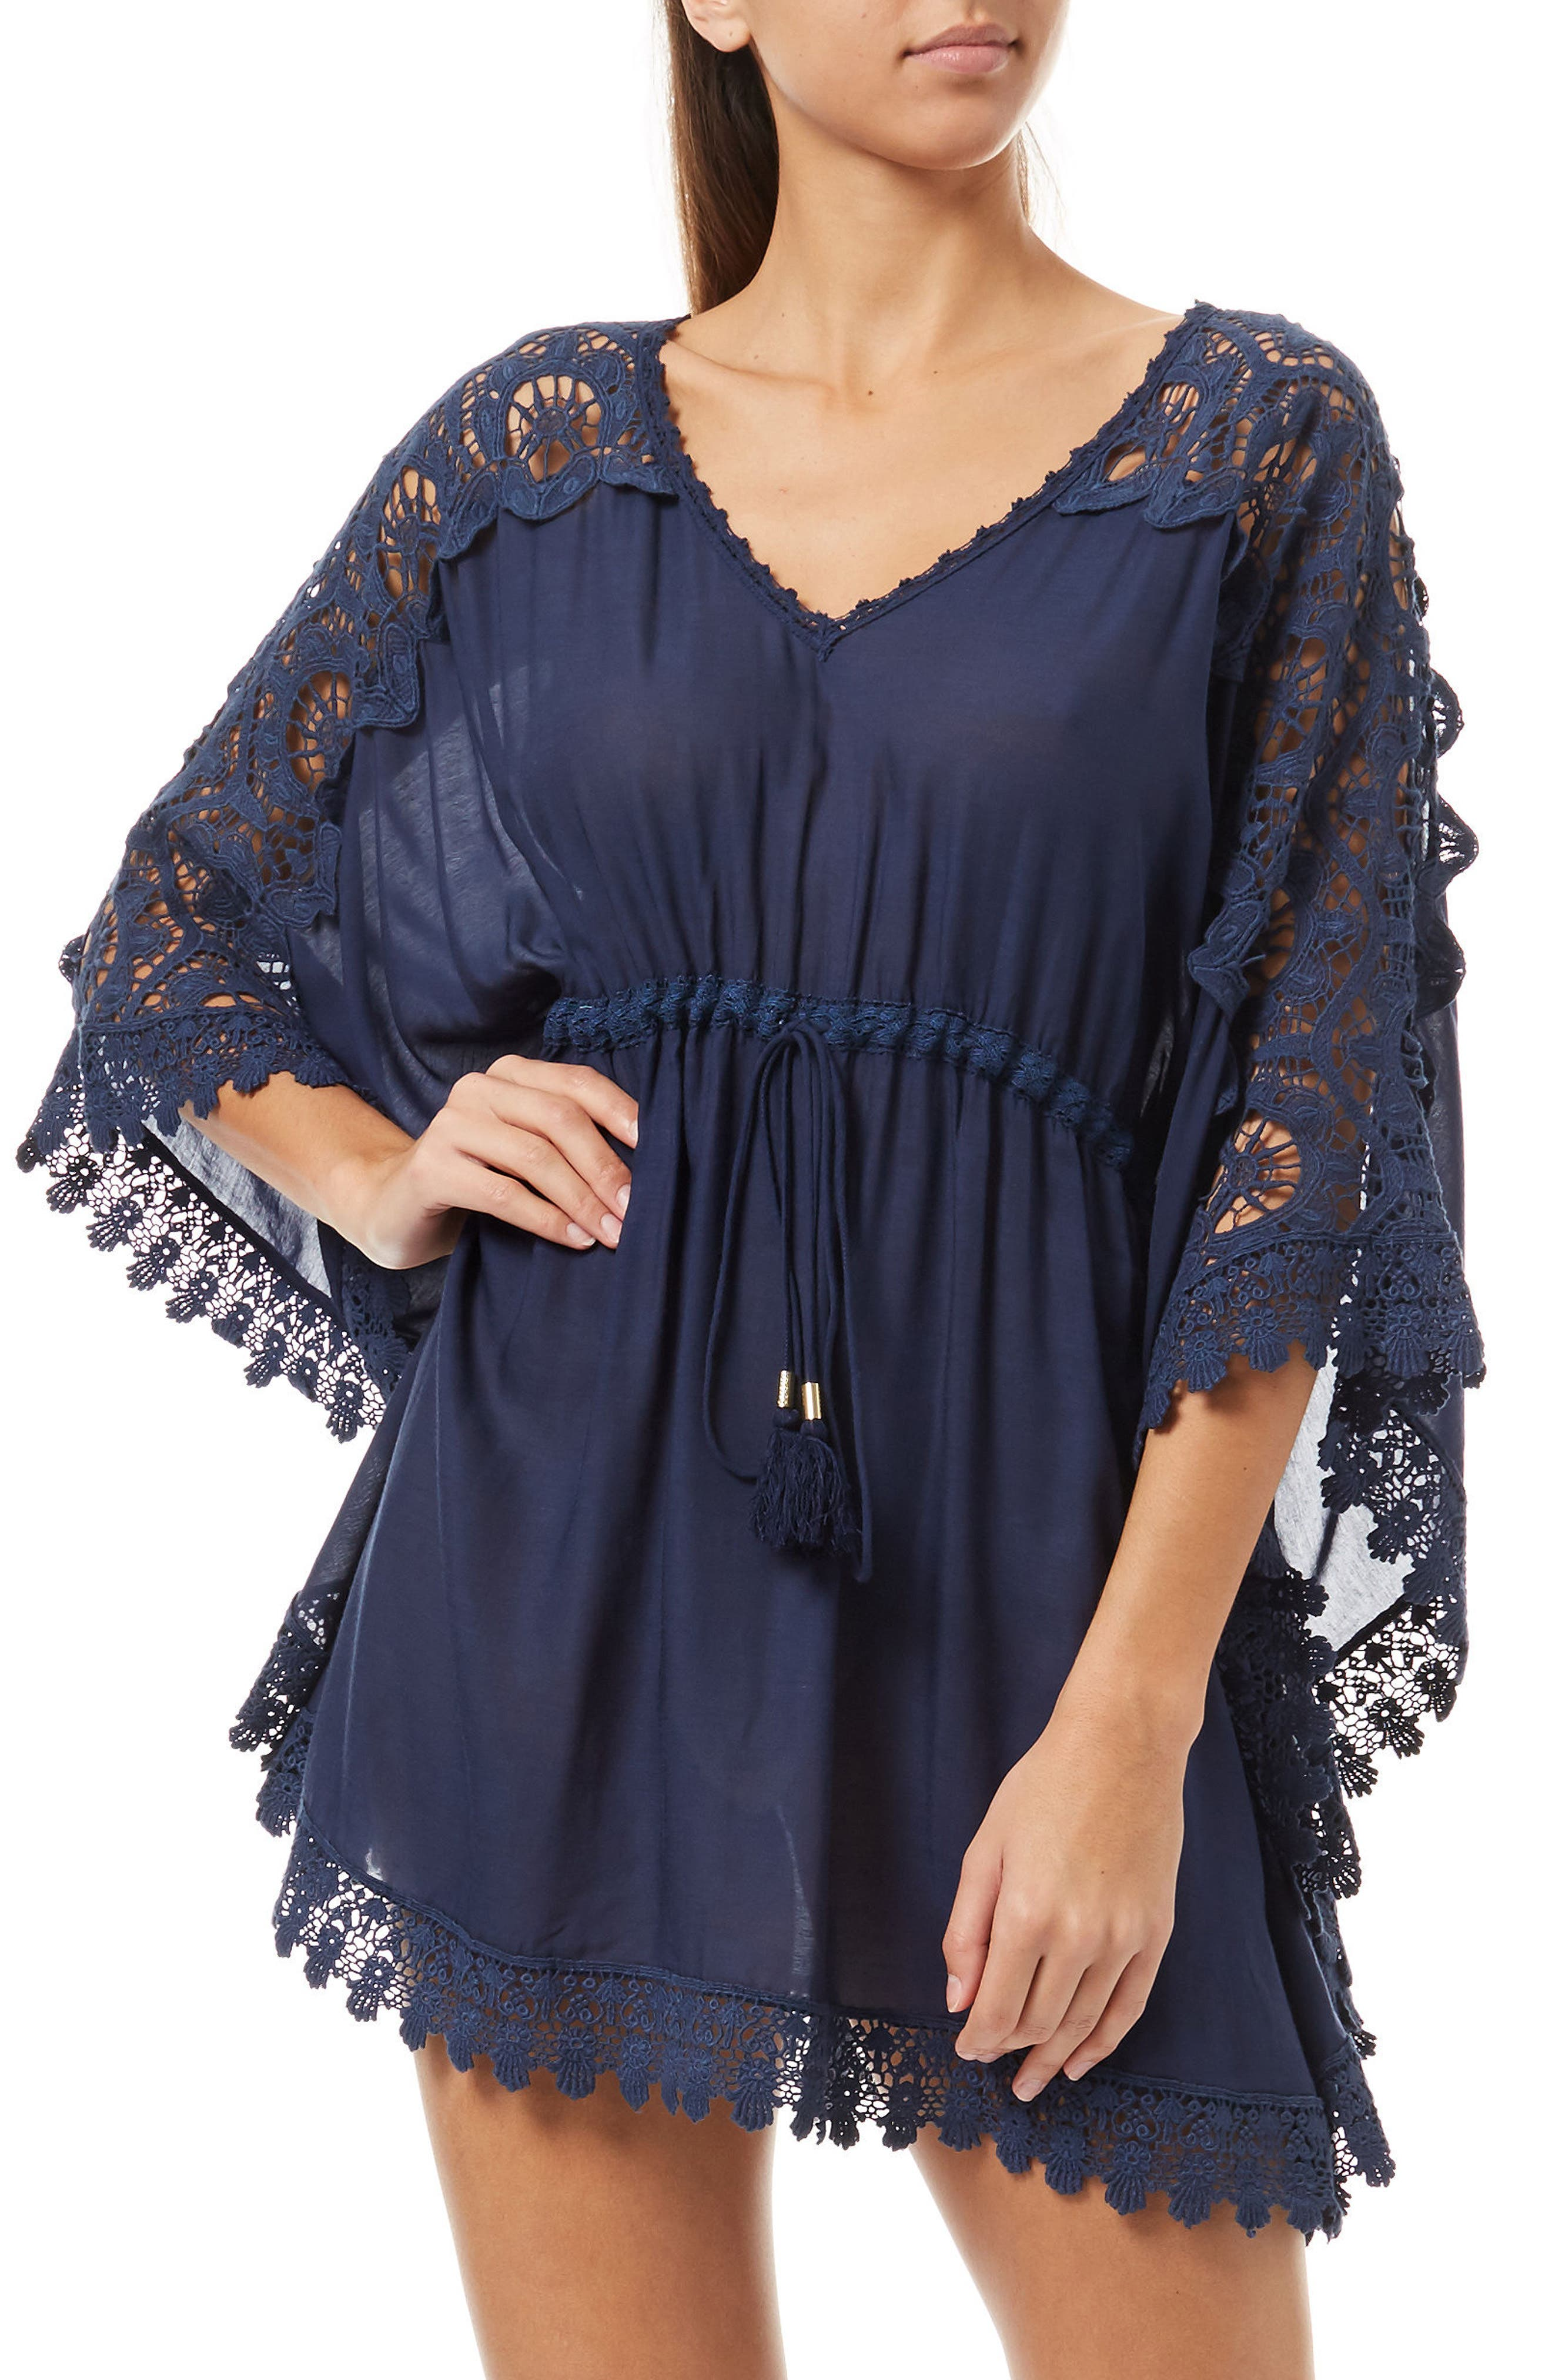 Roby Cover-Up Dress,                         Main,                         color, 430